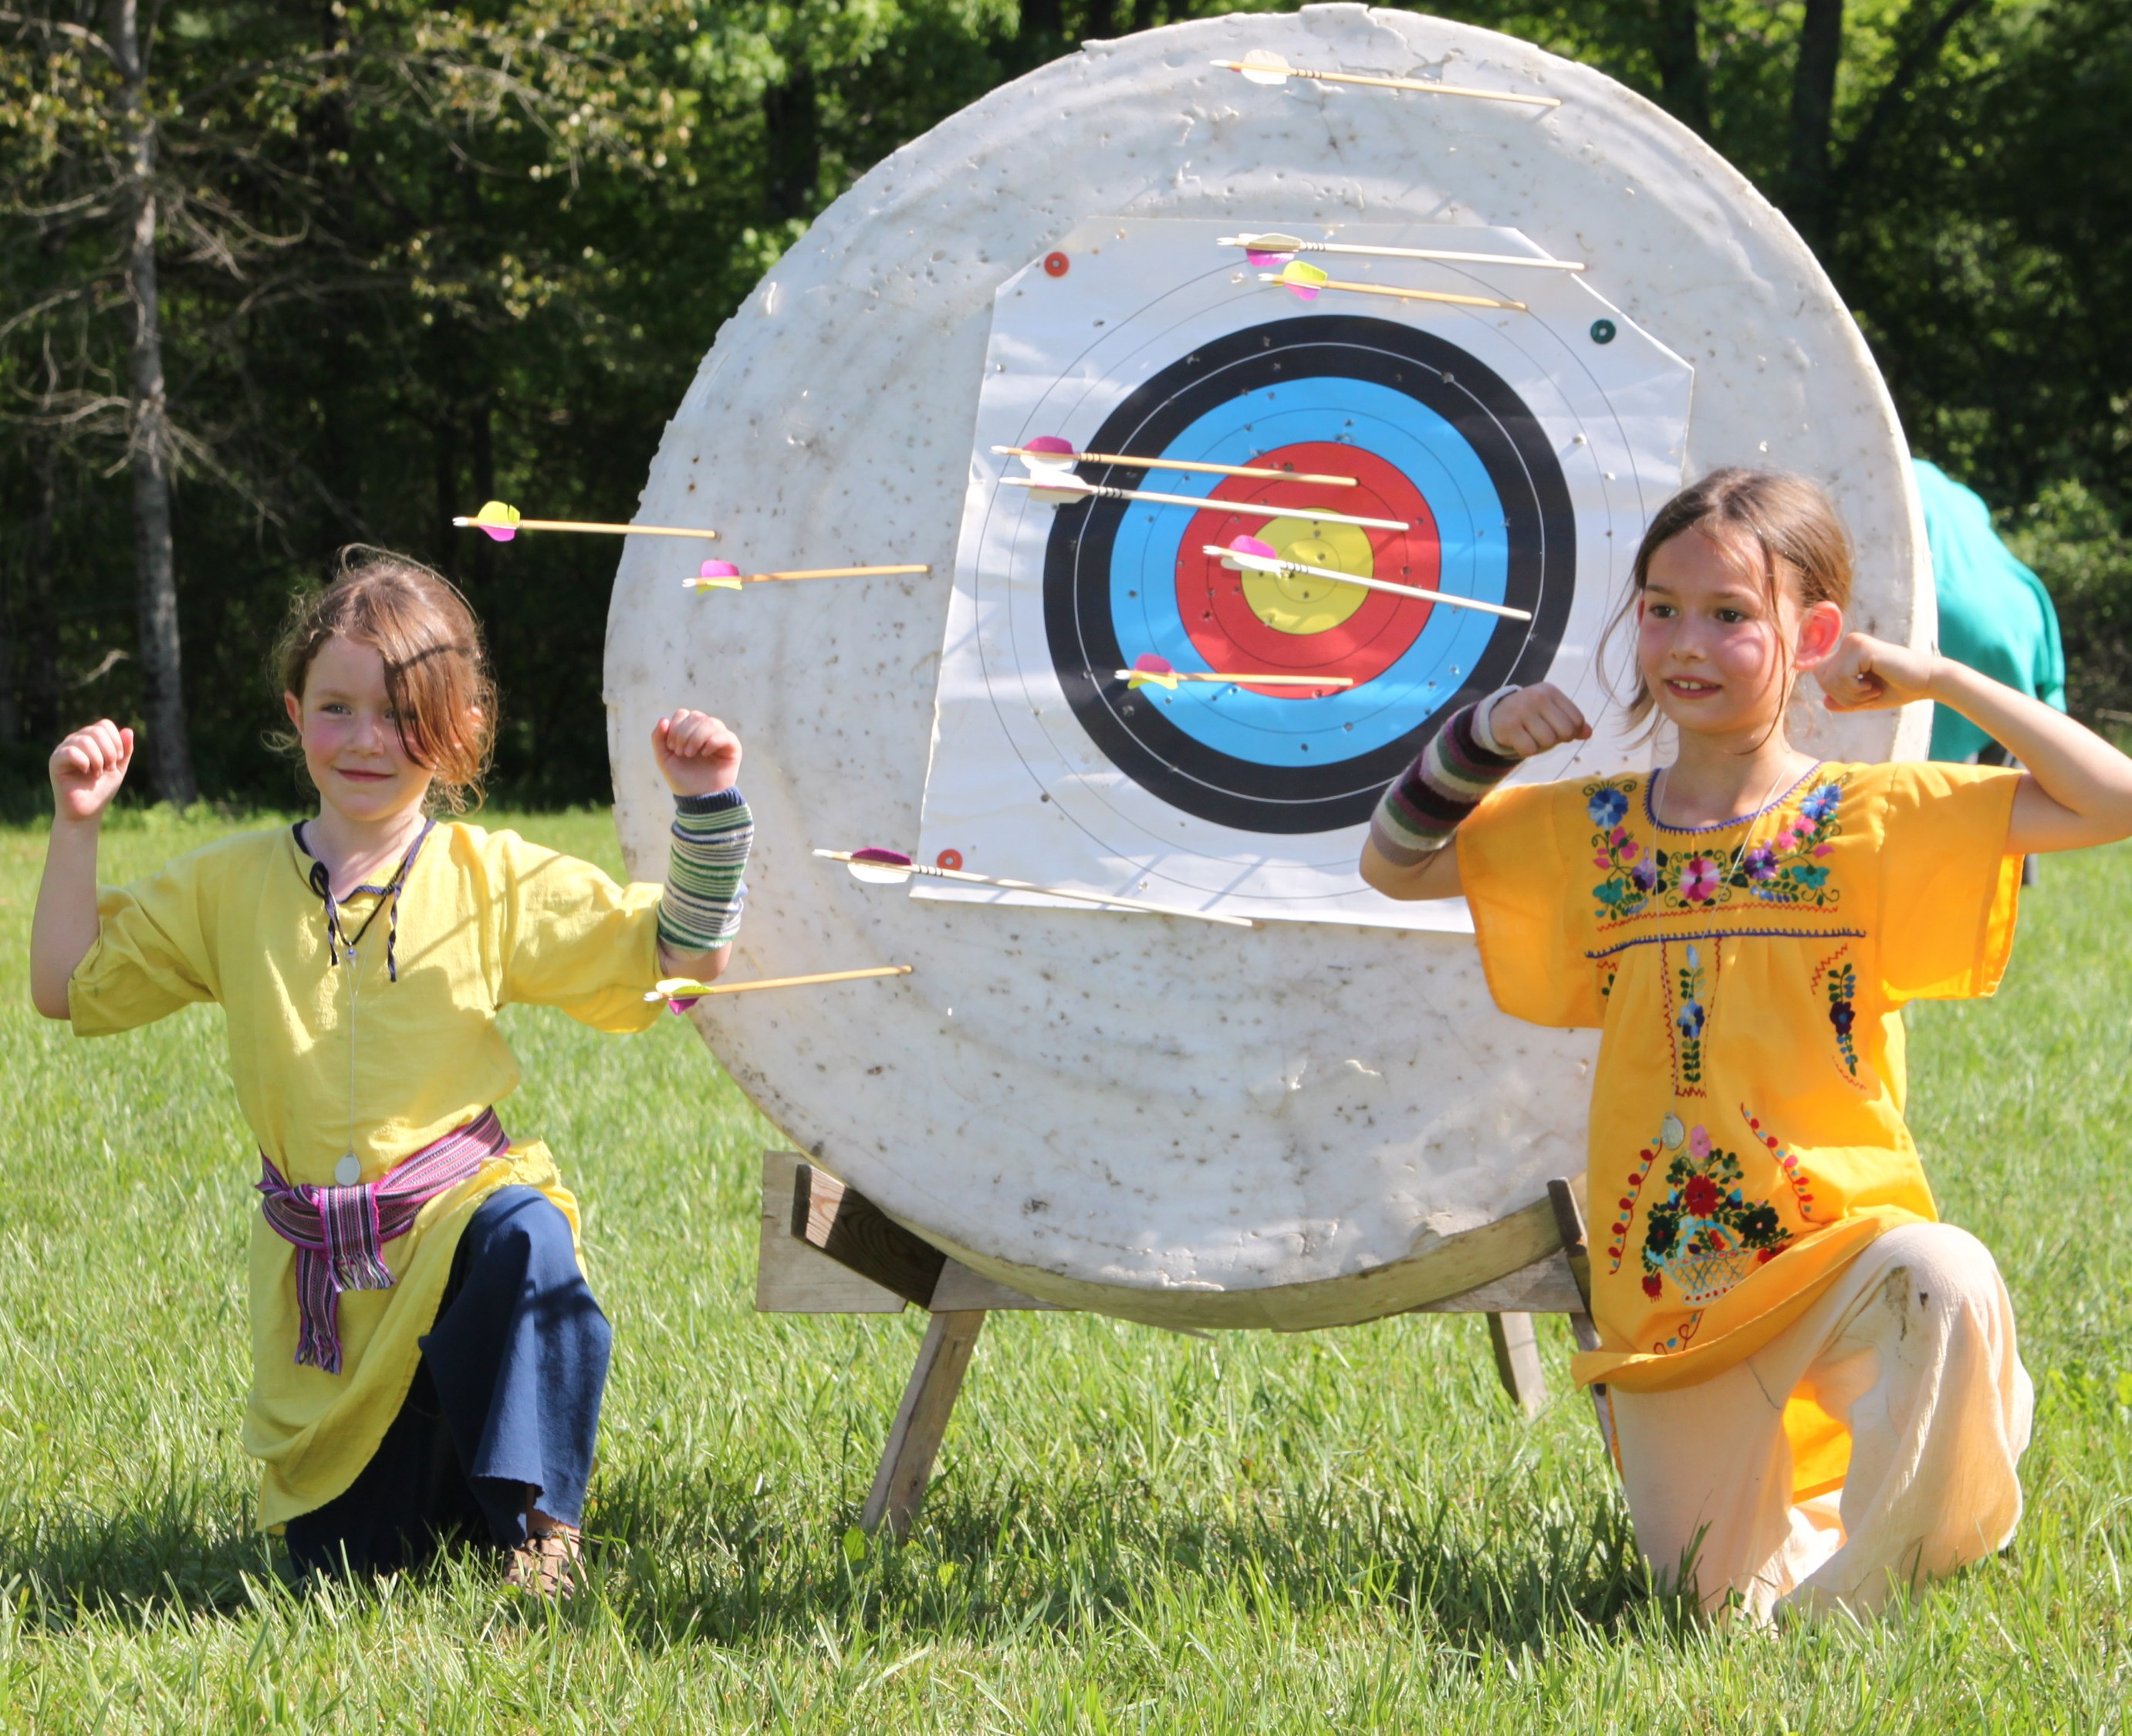 Young archers with target at Panteria 2012